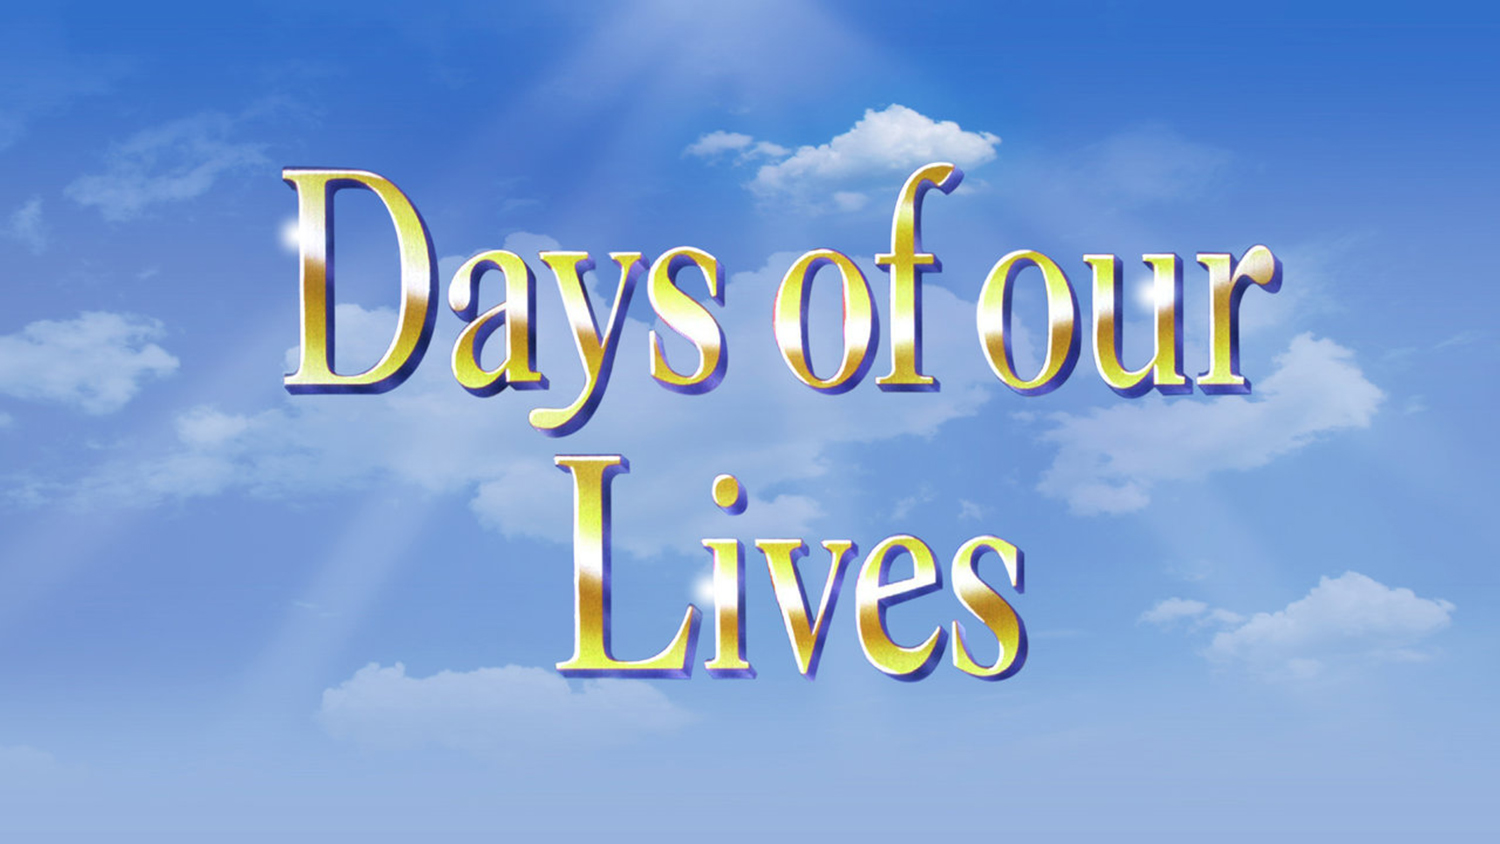 Days of our lives lleva 51 años en emisión (Foto: NBC).